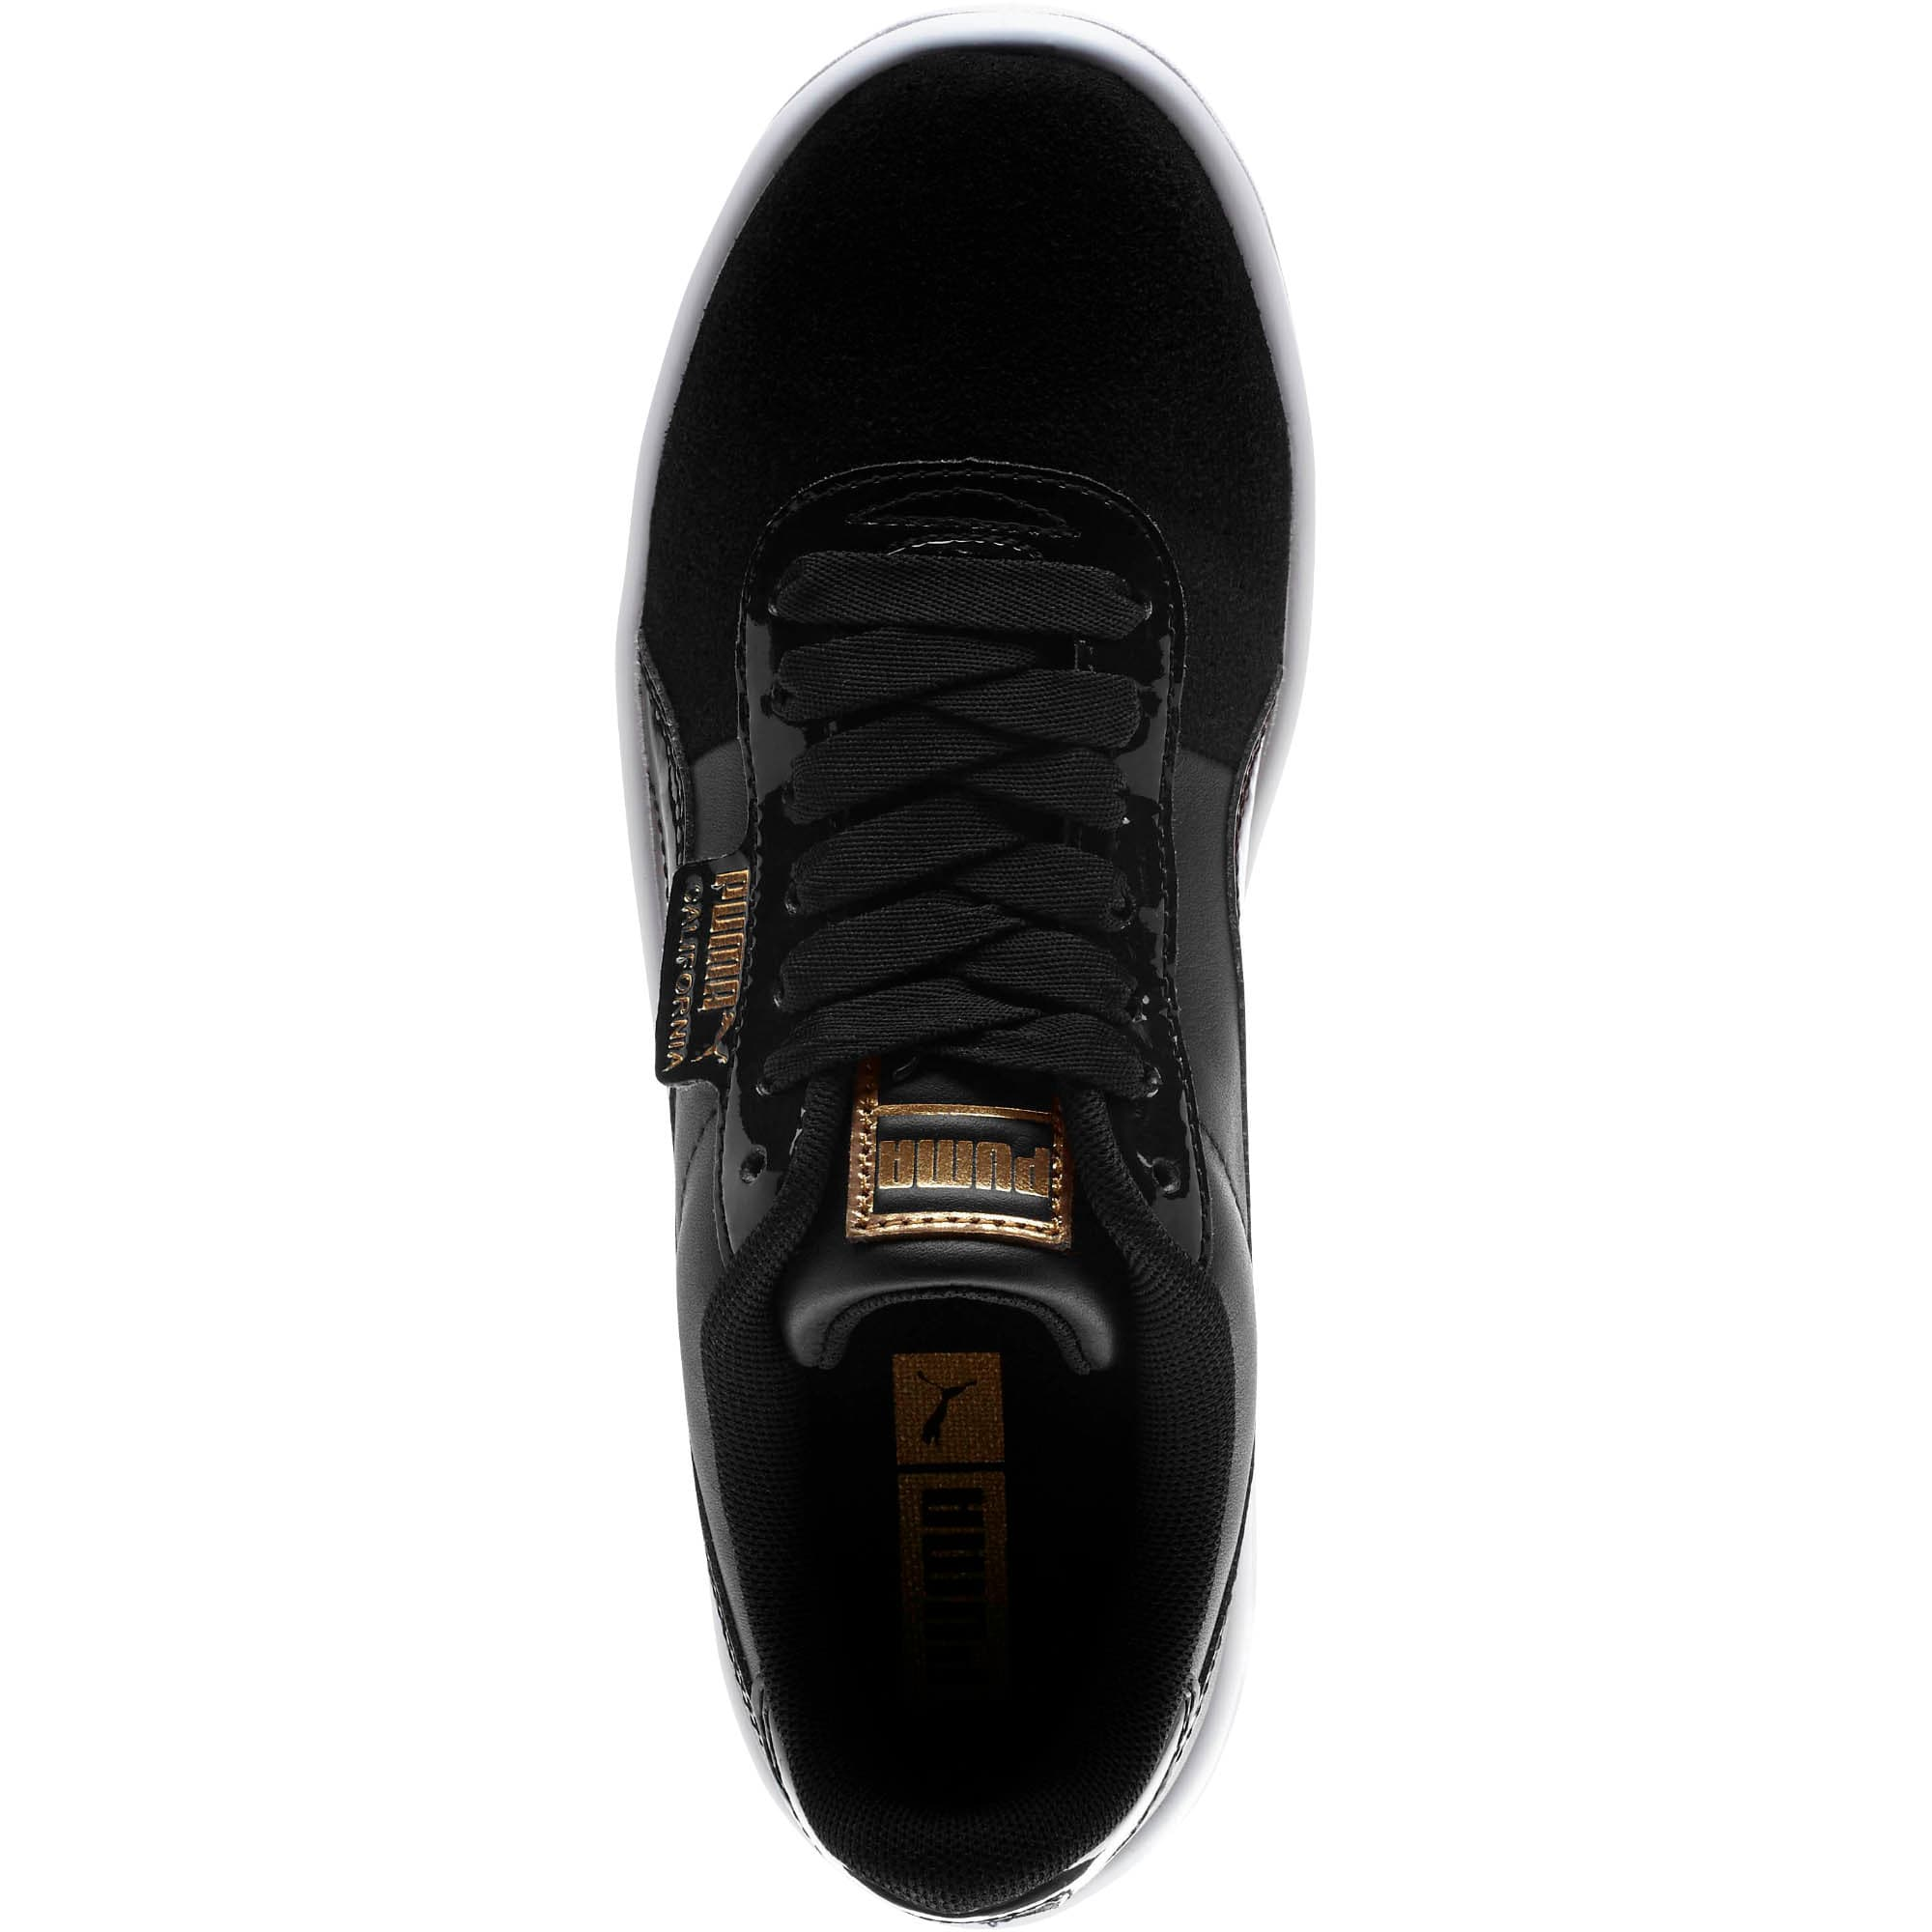 Thumbnail 5 of California Monochrome Women's Sneakers, Puma Black-Puma Team Gold, medium